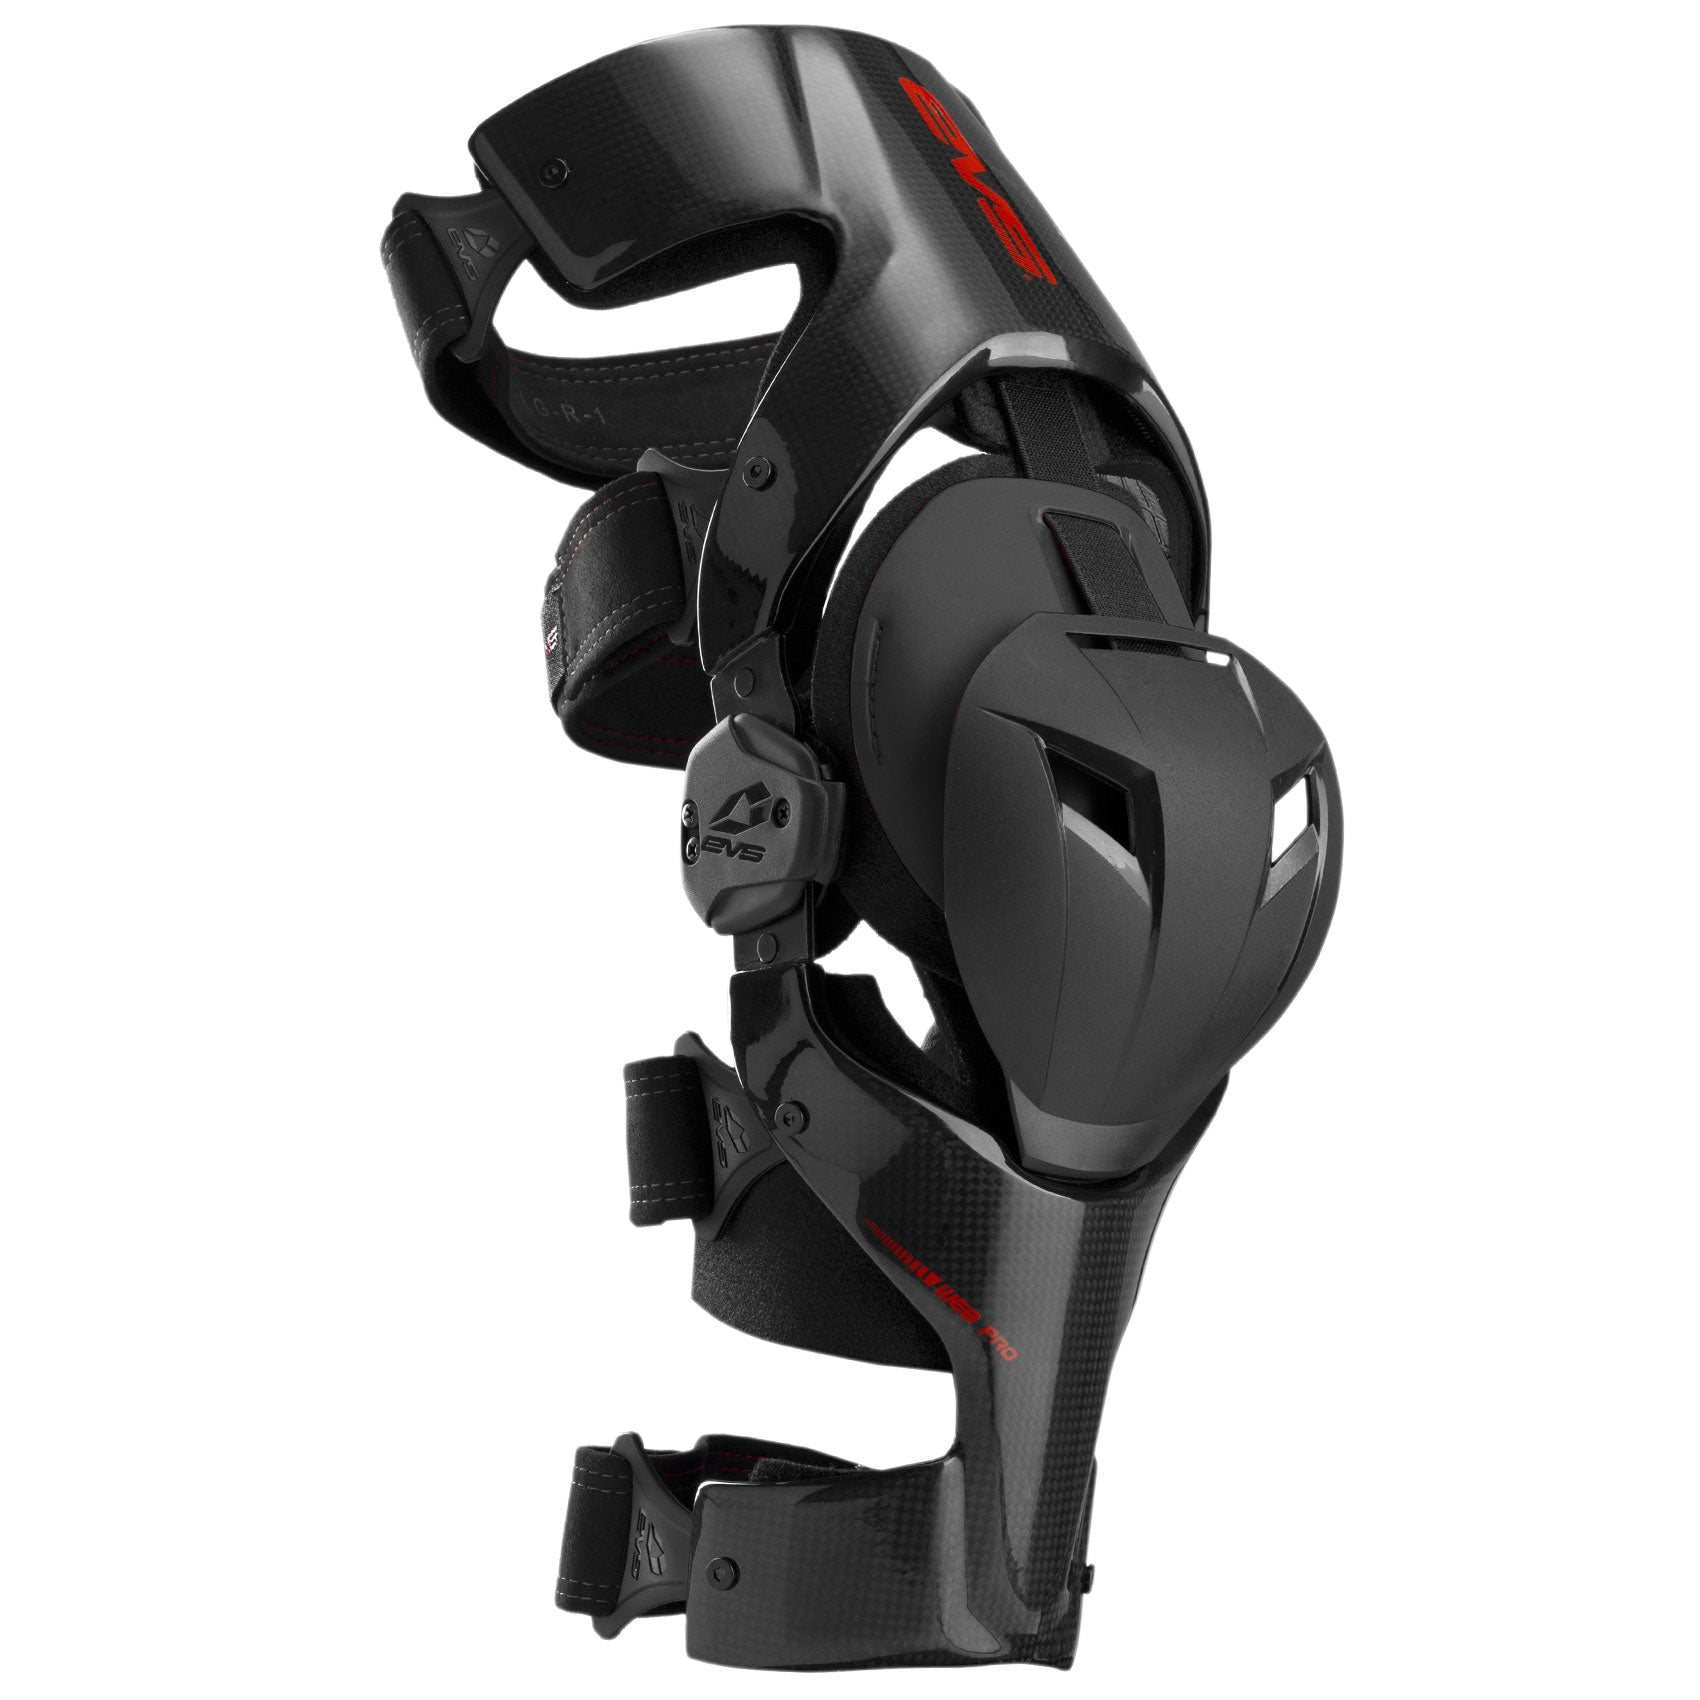 db8e9c5972 EVS Sports - Web Pro Knee Brace - Single - Knee Braces